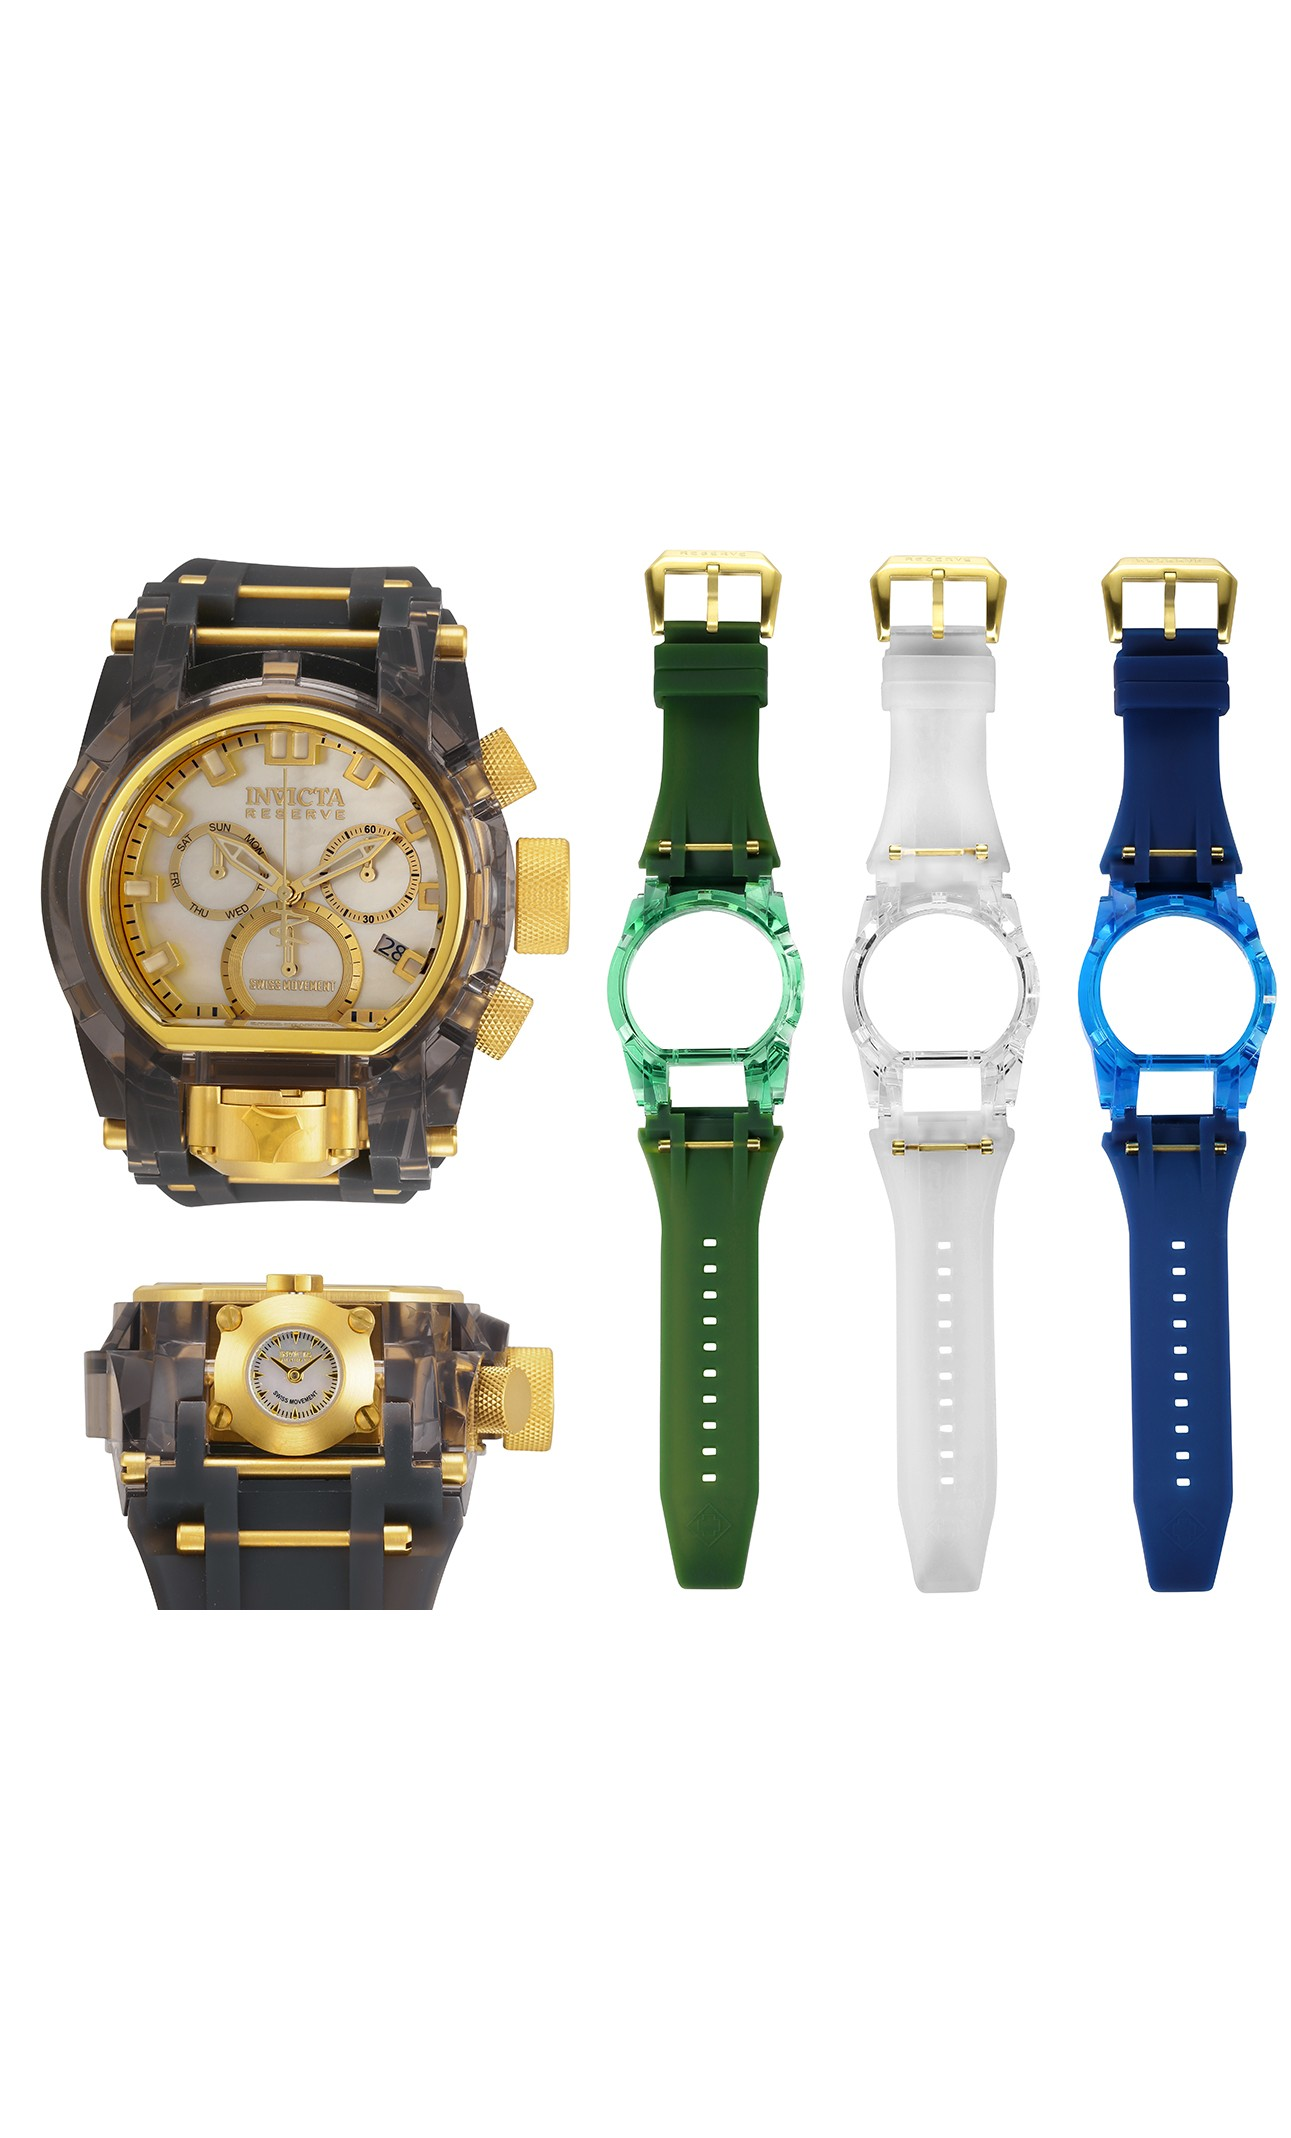 Invicta Anatomic Bolt Zeus Magnum Quartz Mens Watch w/ Interchangeable Bands - 52mm Stainless Steel/Plastic Case, SS/Silicone Band (33186)